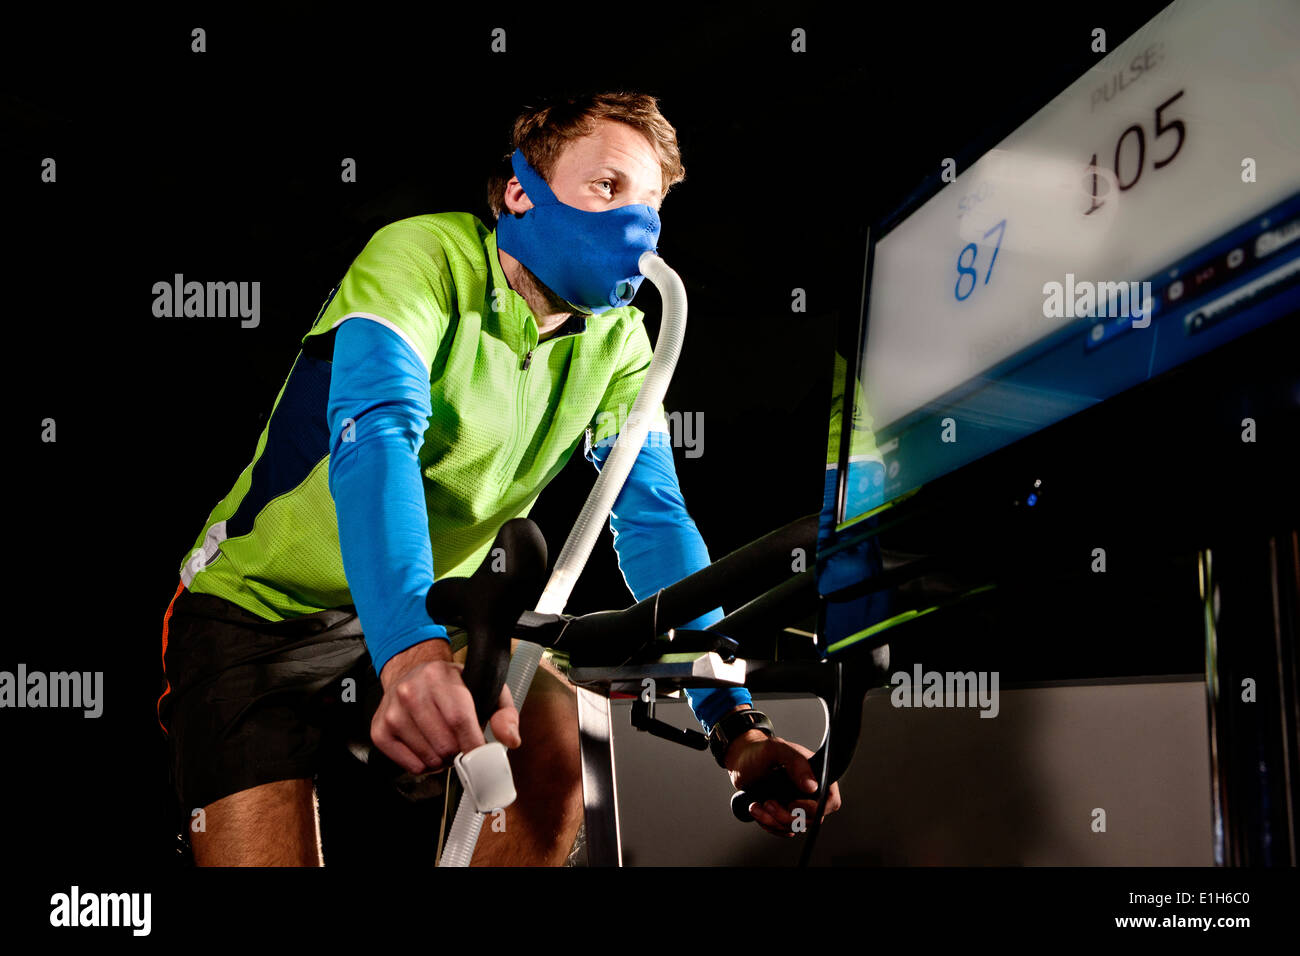 Young man in face mask on gym exercise cycle in altitude centre - Stock Image